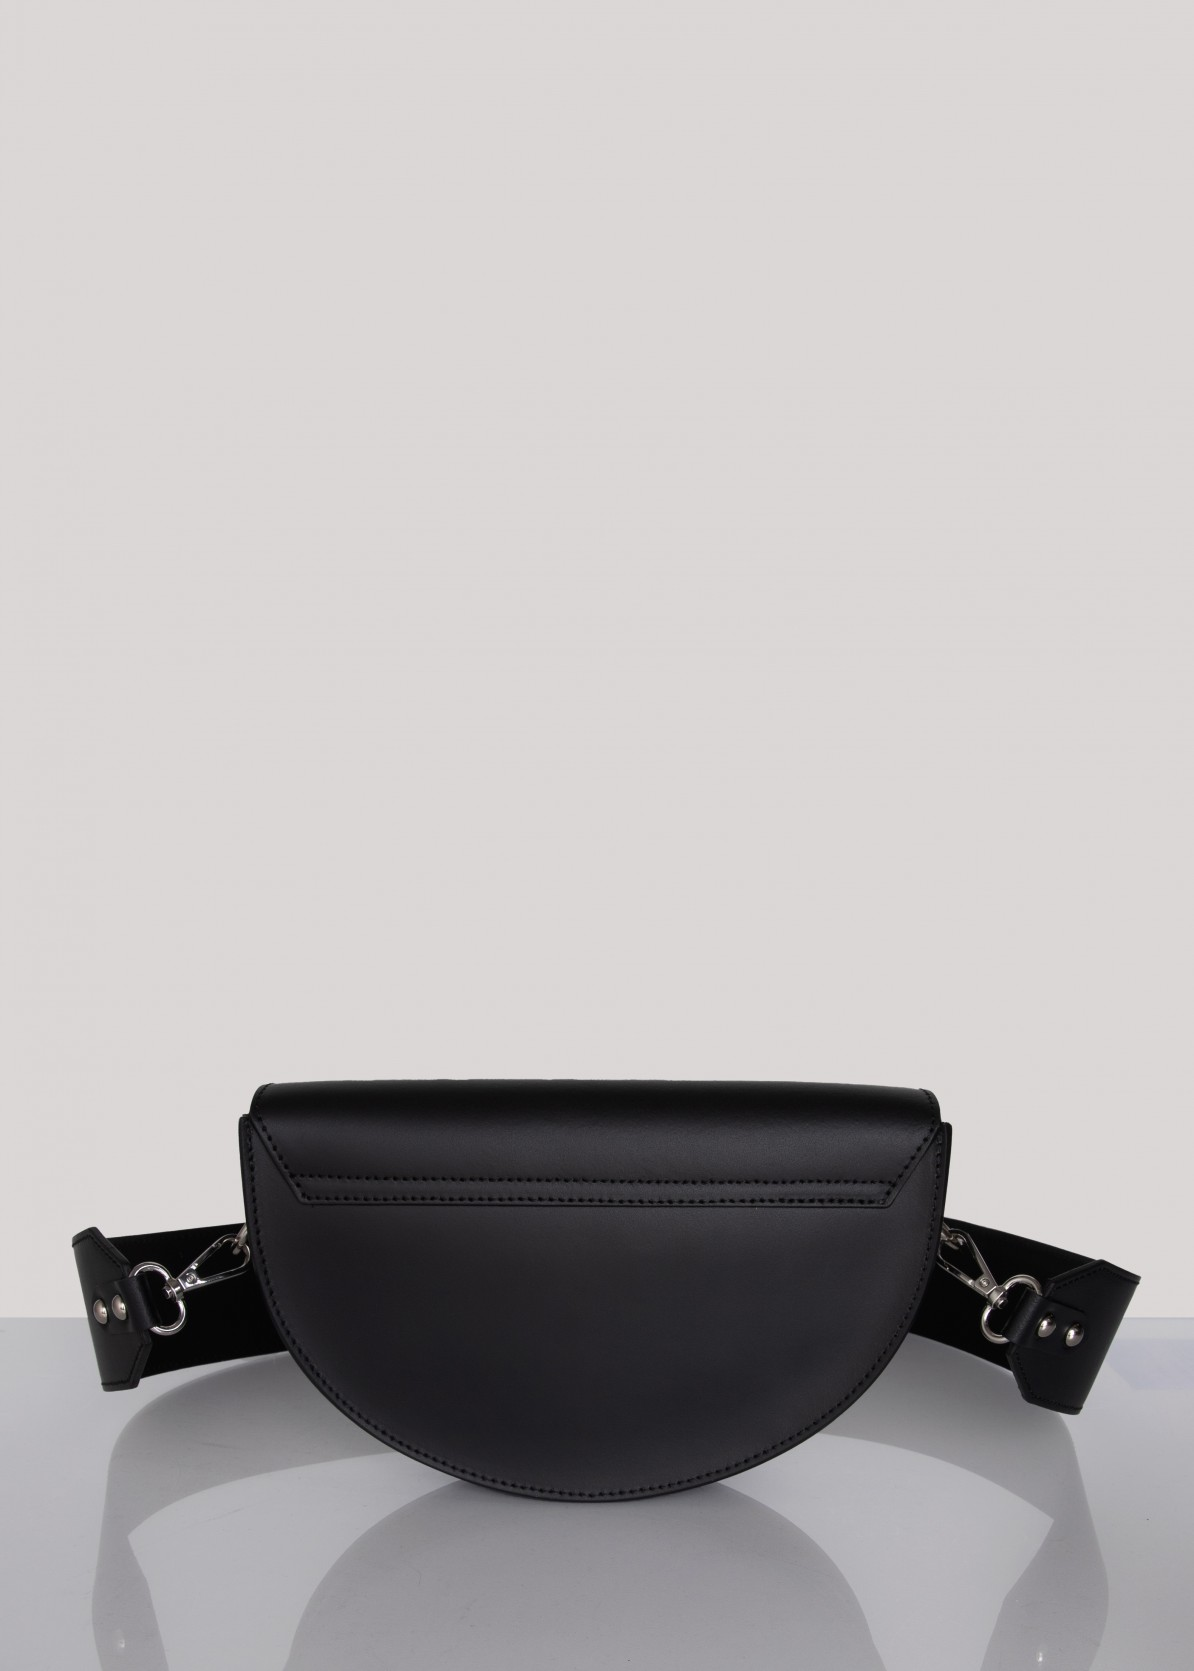 Moon saddle bag classic silver touch